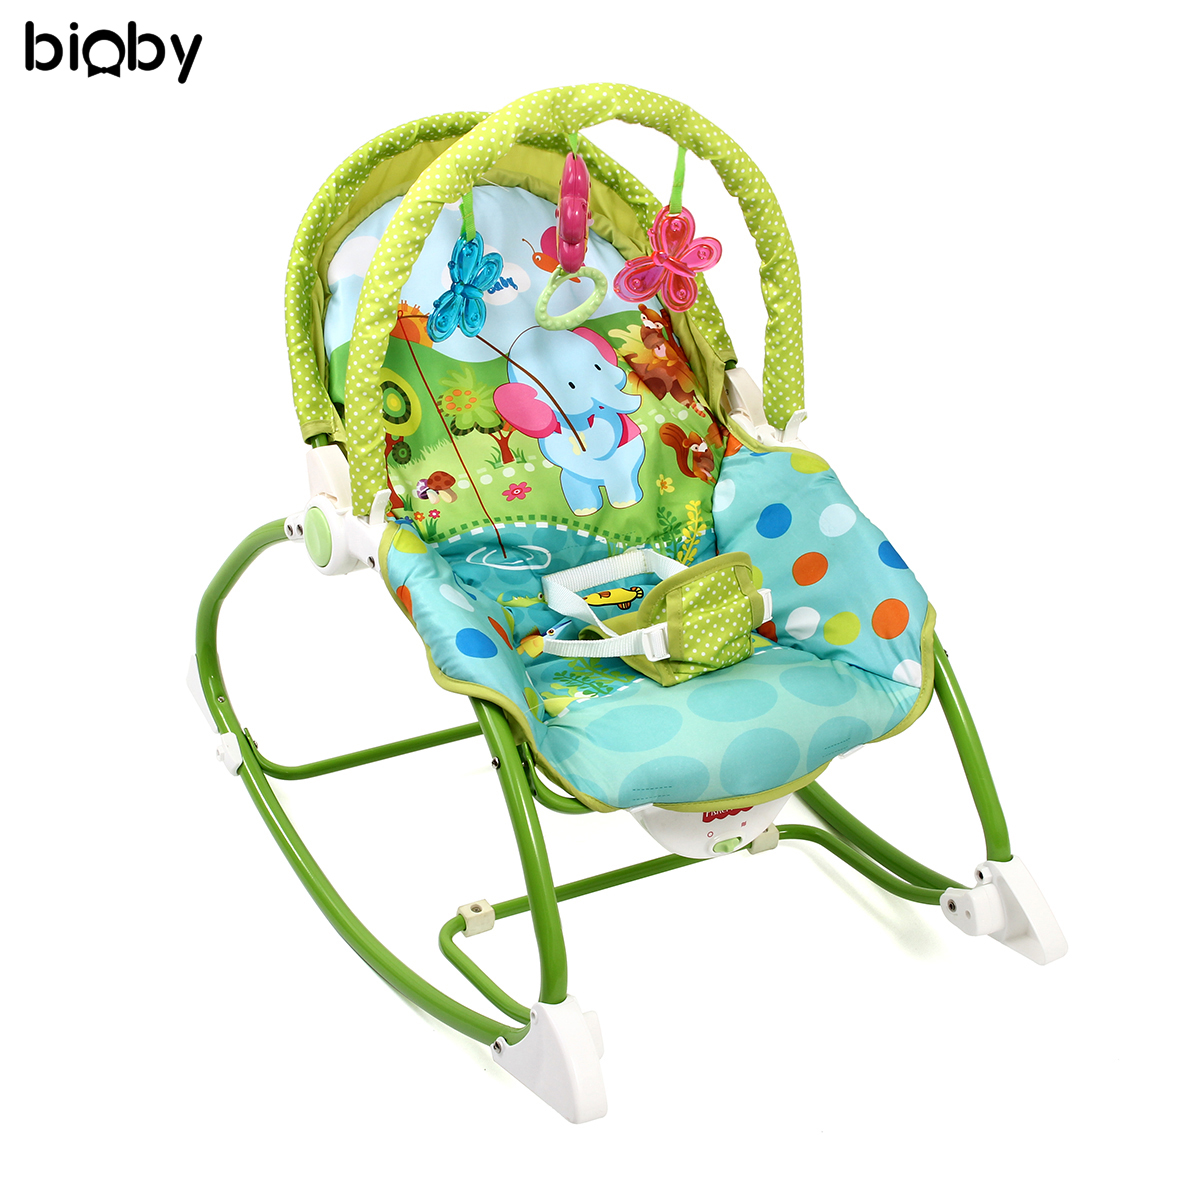 Bouncer Baby Us 43 19 49 Off Baby Infant Music Care Chair Folding Cradle Seat Baby Rocking Bouncer Vibration Swing Toys Sleeper Balance Newborn Rocker Chair In